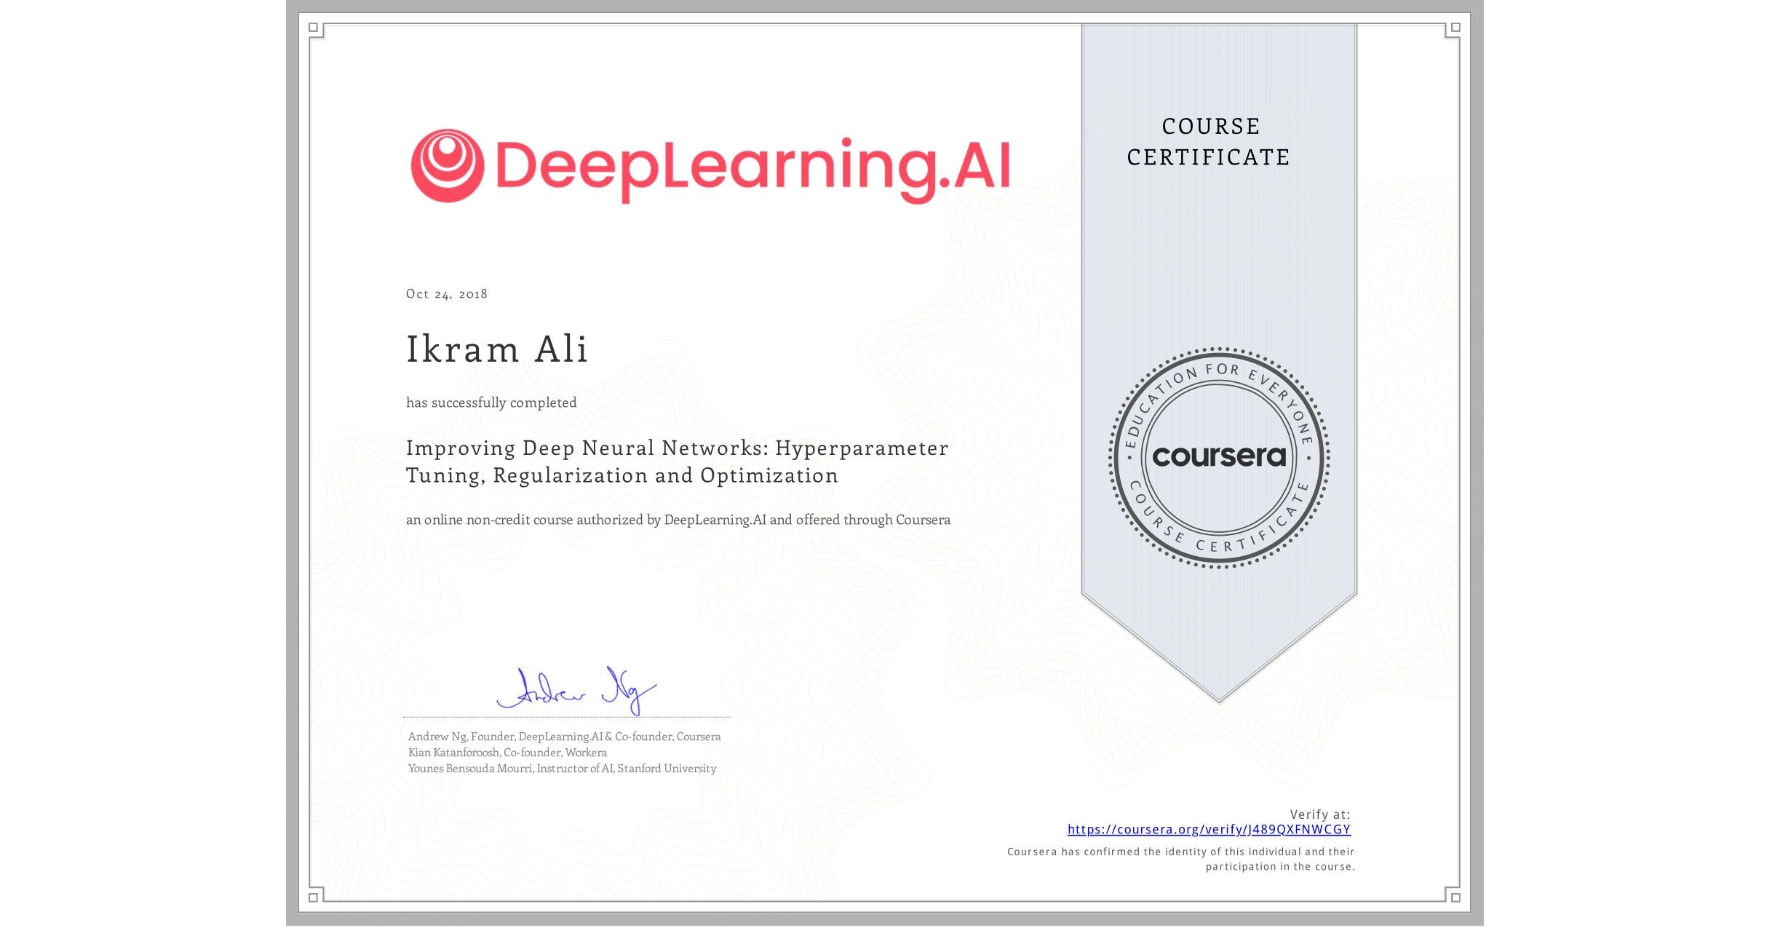 View certificate for Ikram Ali, Improving Deep Neural Networks: Hyperparameter tuning, Regularization and Optimization, an online non-credit course authorized by DeepLearning.AI and offered through Coursera